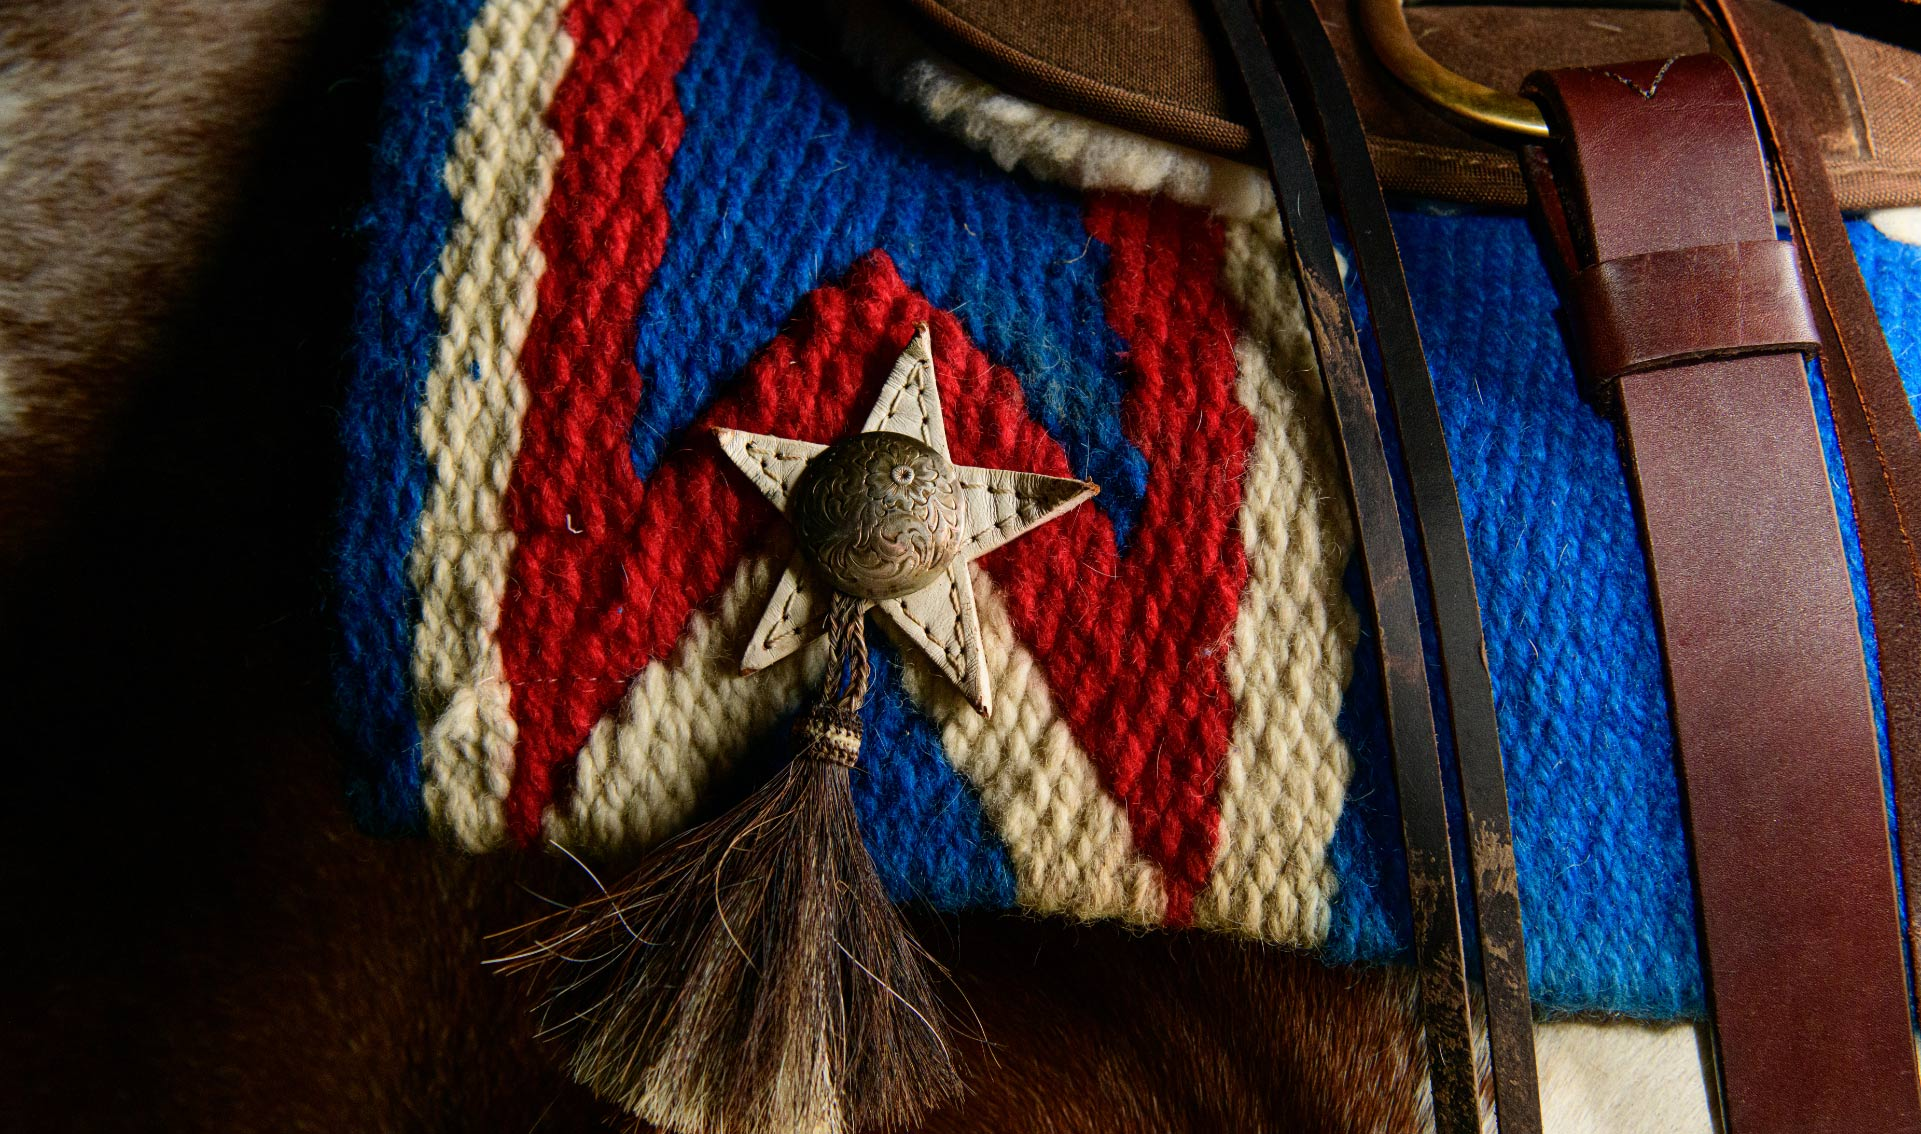 A close-up of a star decoration on a horses's saddle blanket.